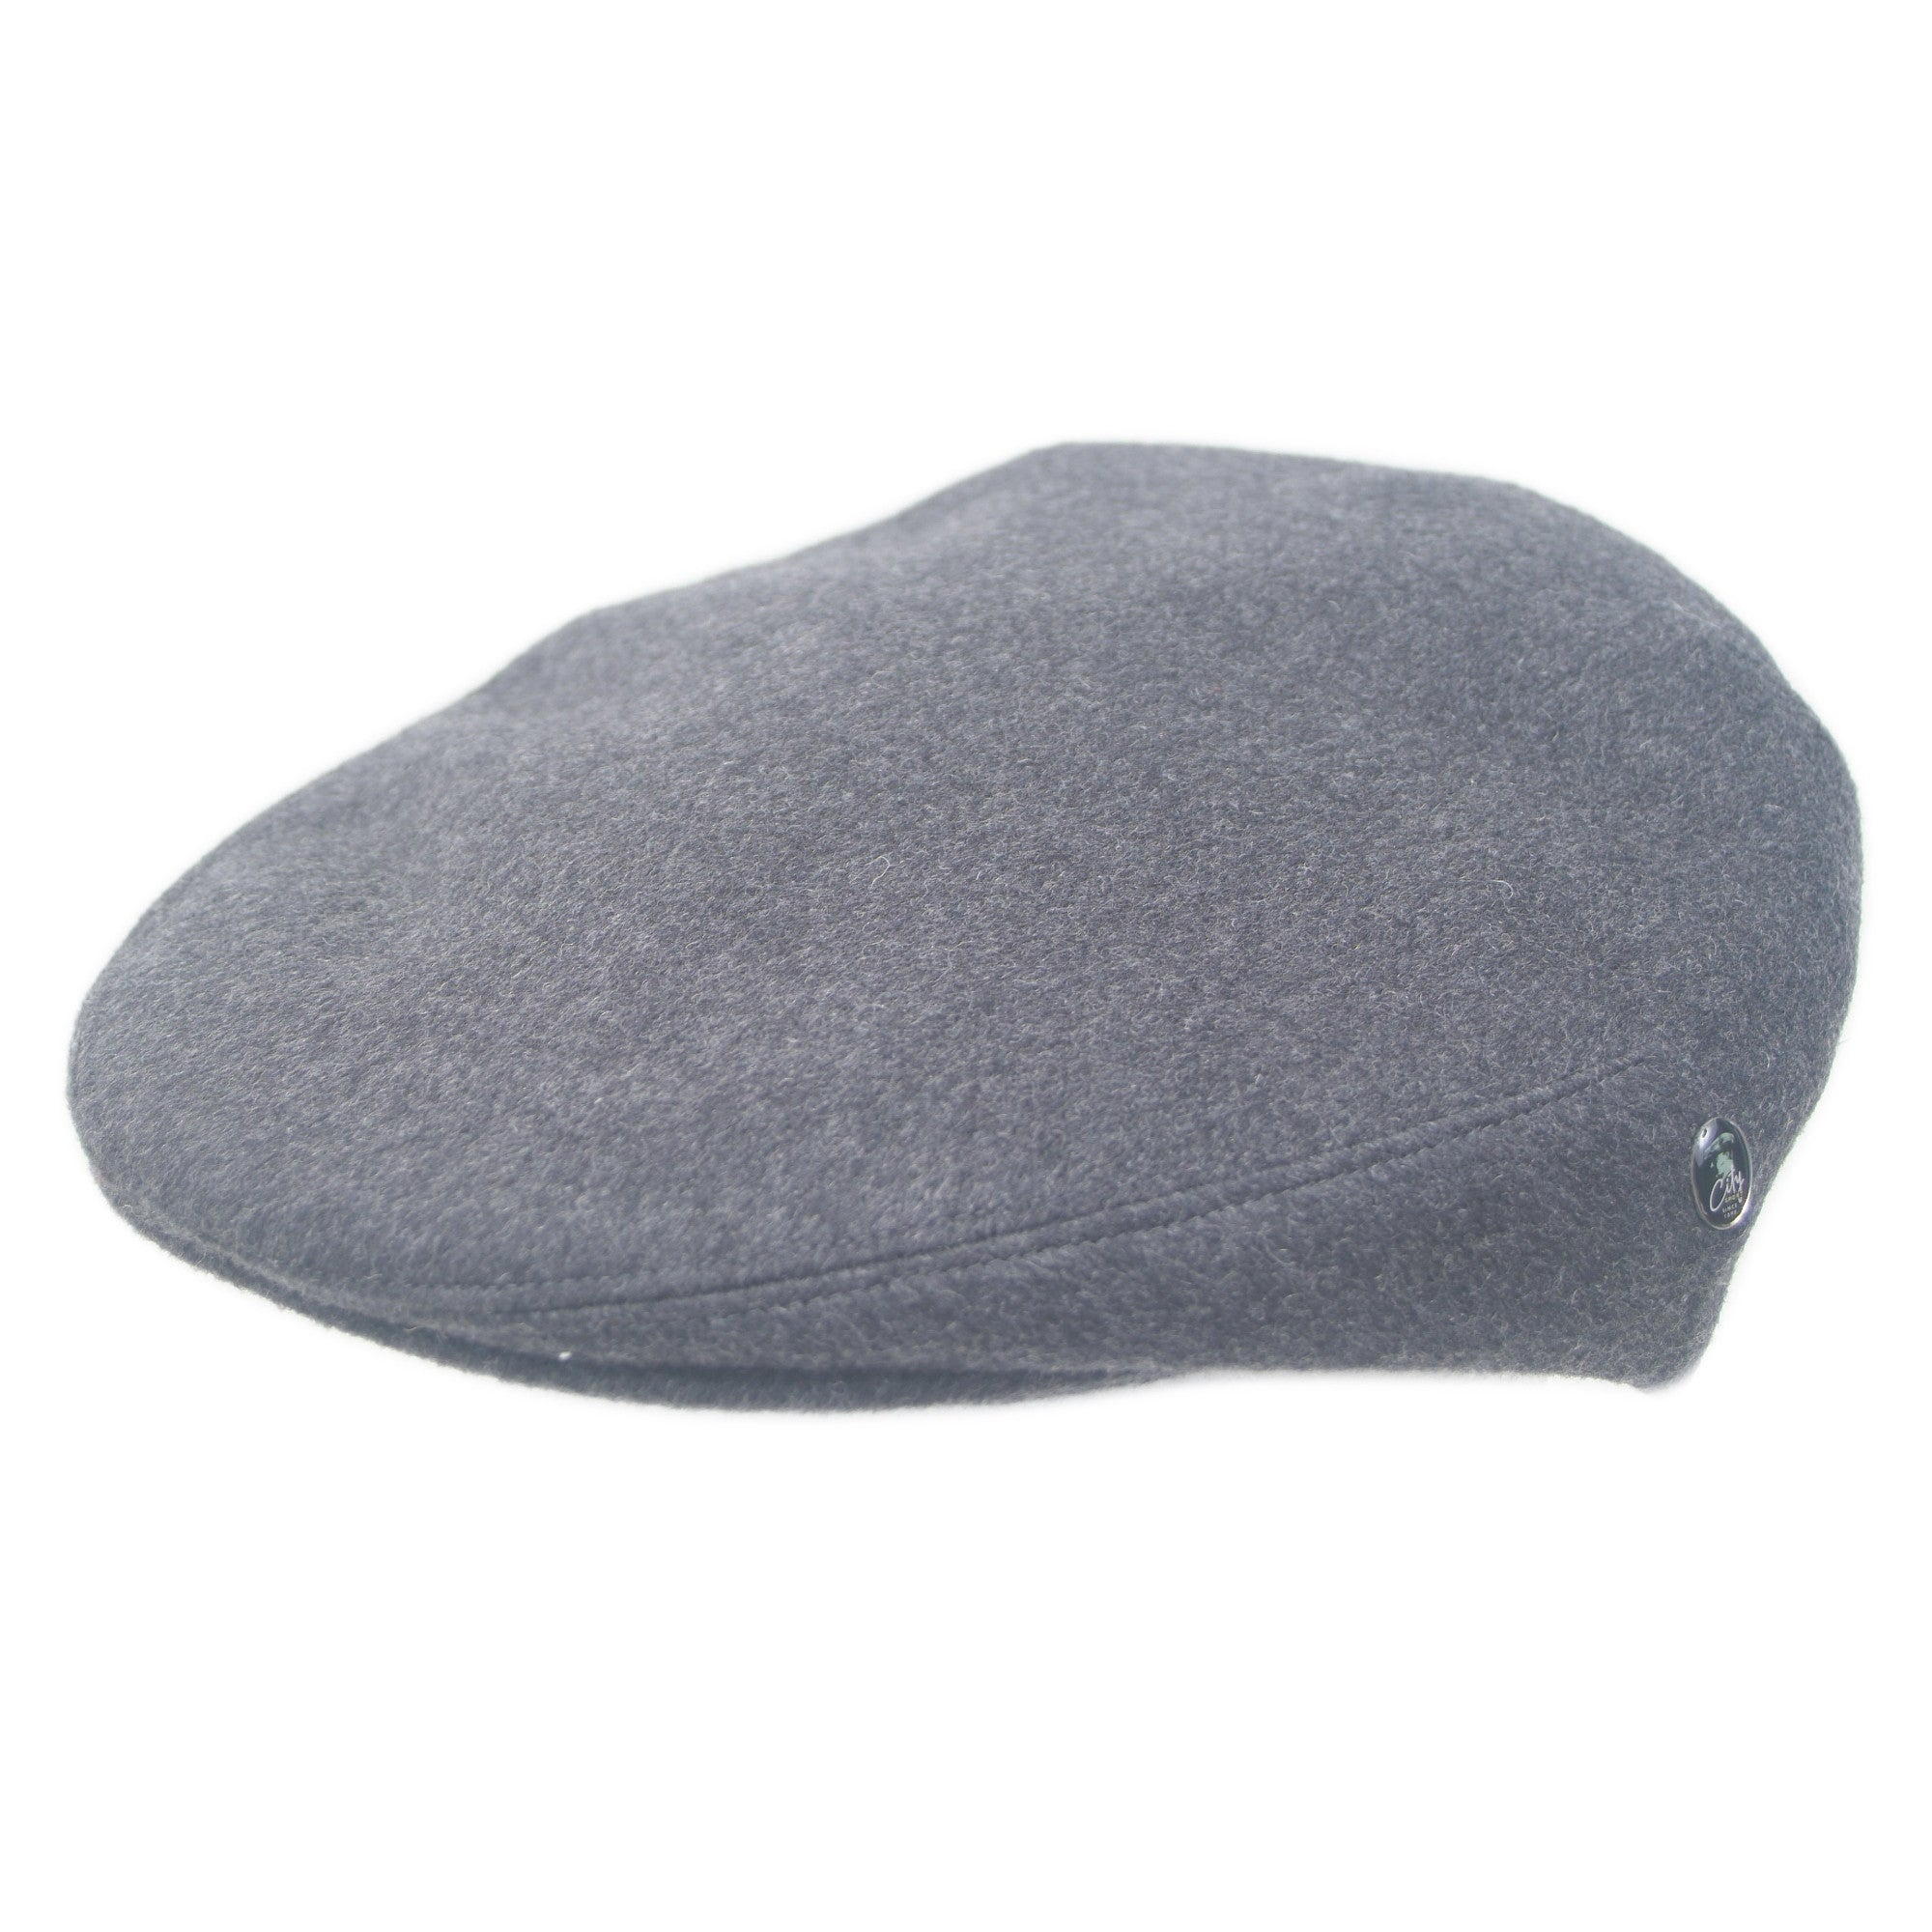 City Sport - Cashmere Flat Cap - Charcoal Grey - The Cashmere Choice 9fcc2aeb8266